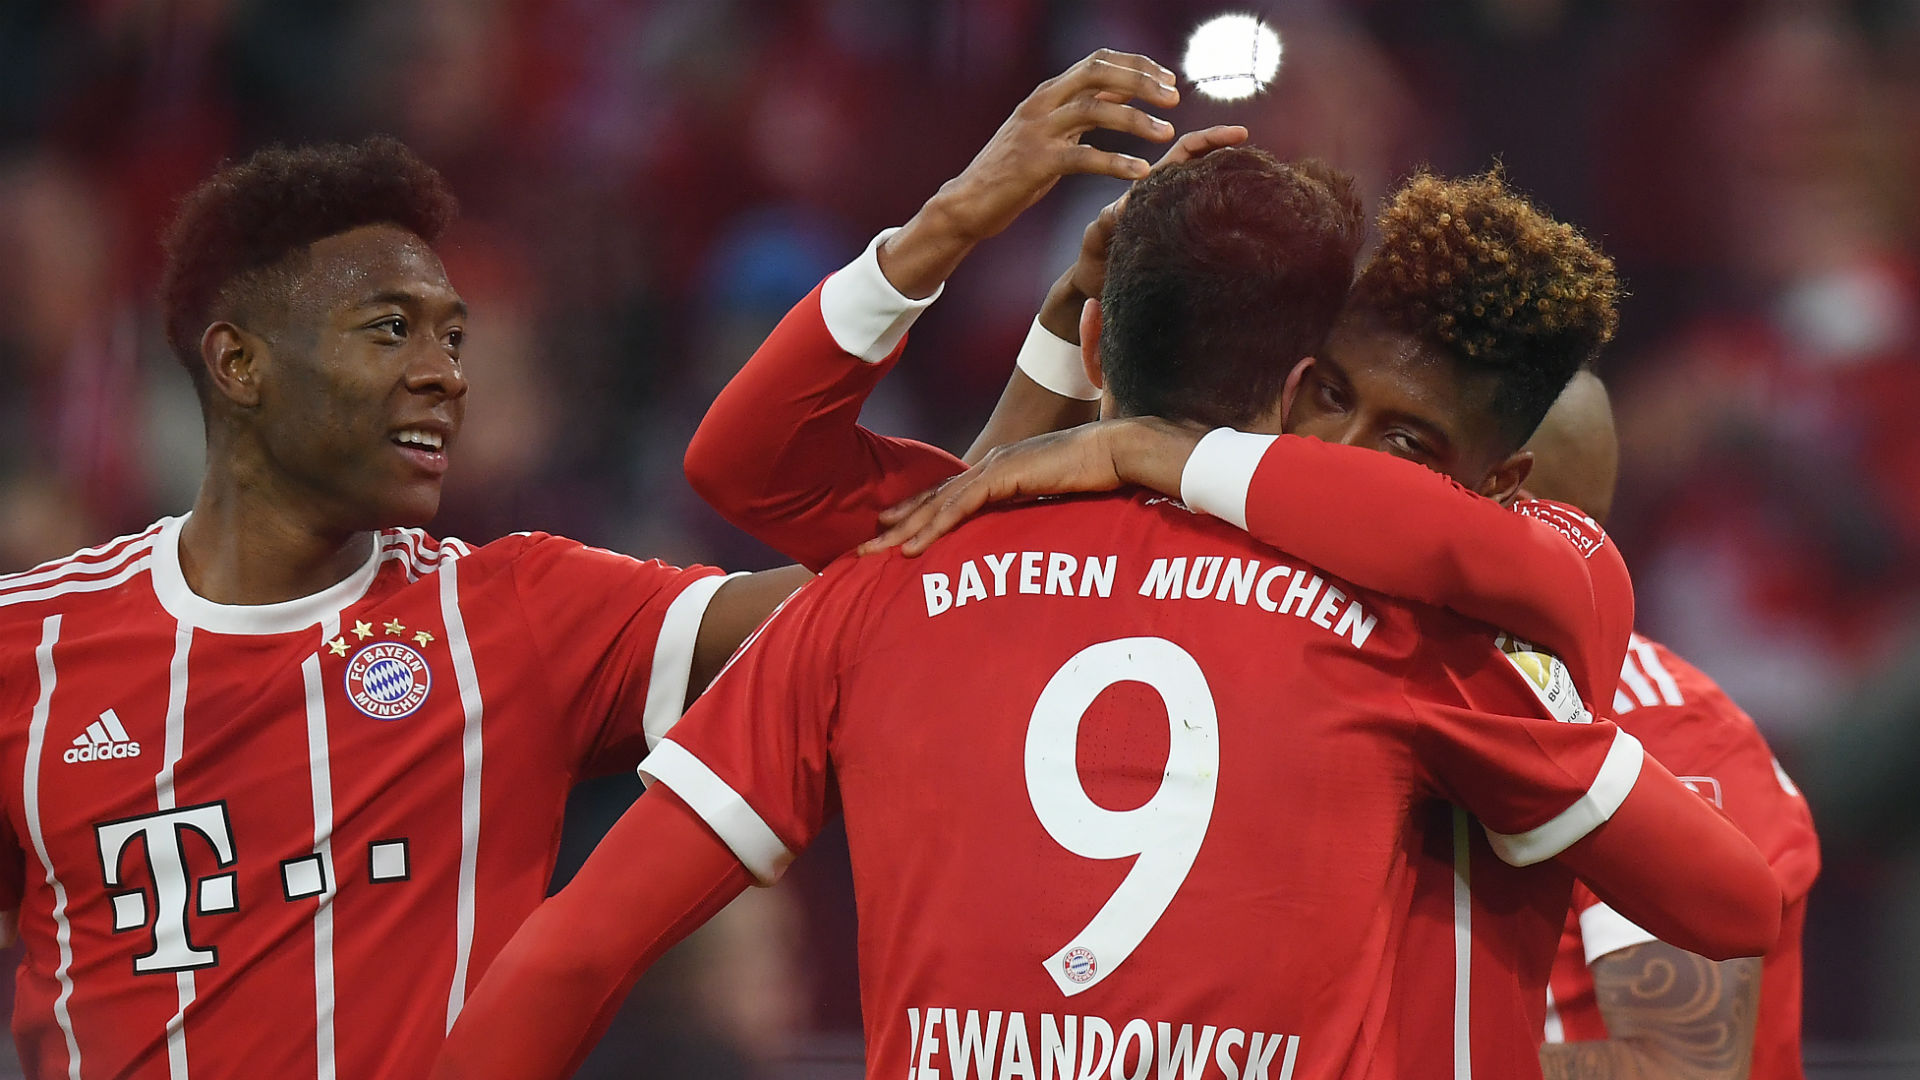 German Bundesliga Report: Bayern Munich v Hoffenheim 27 January 2018